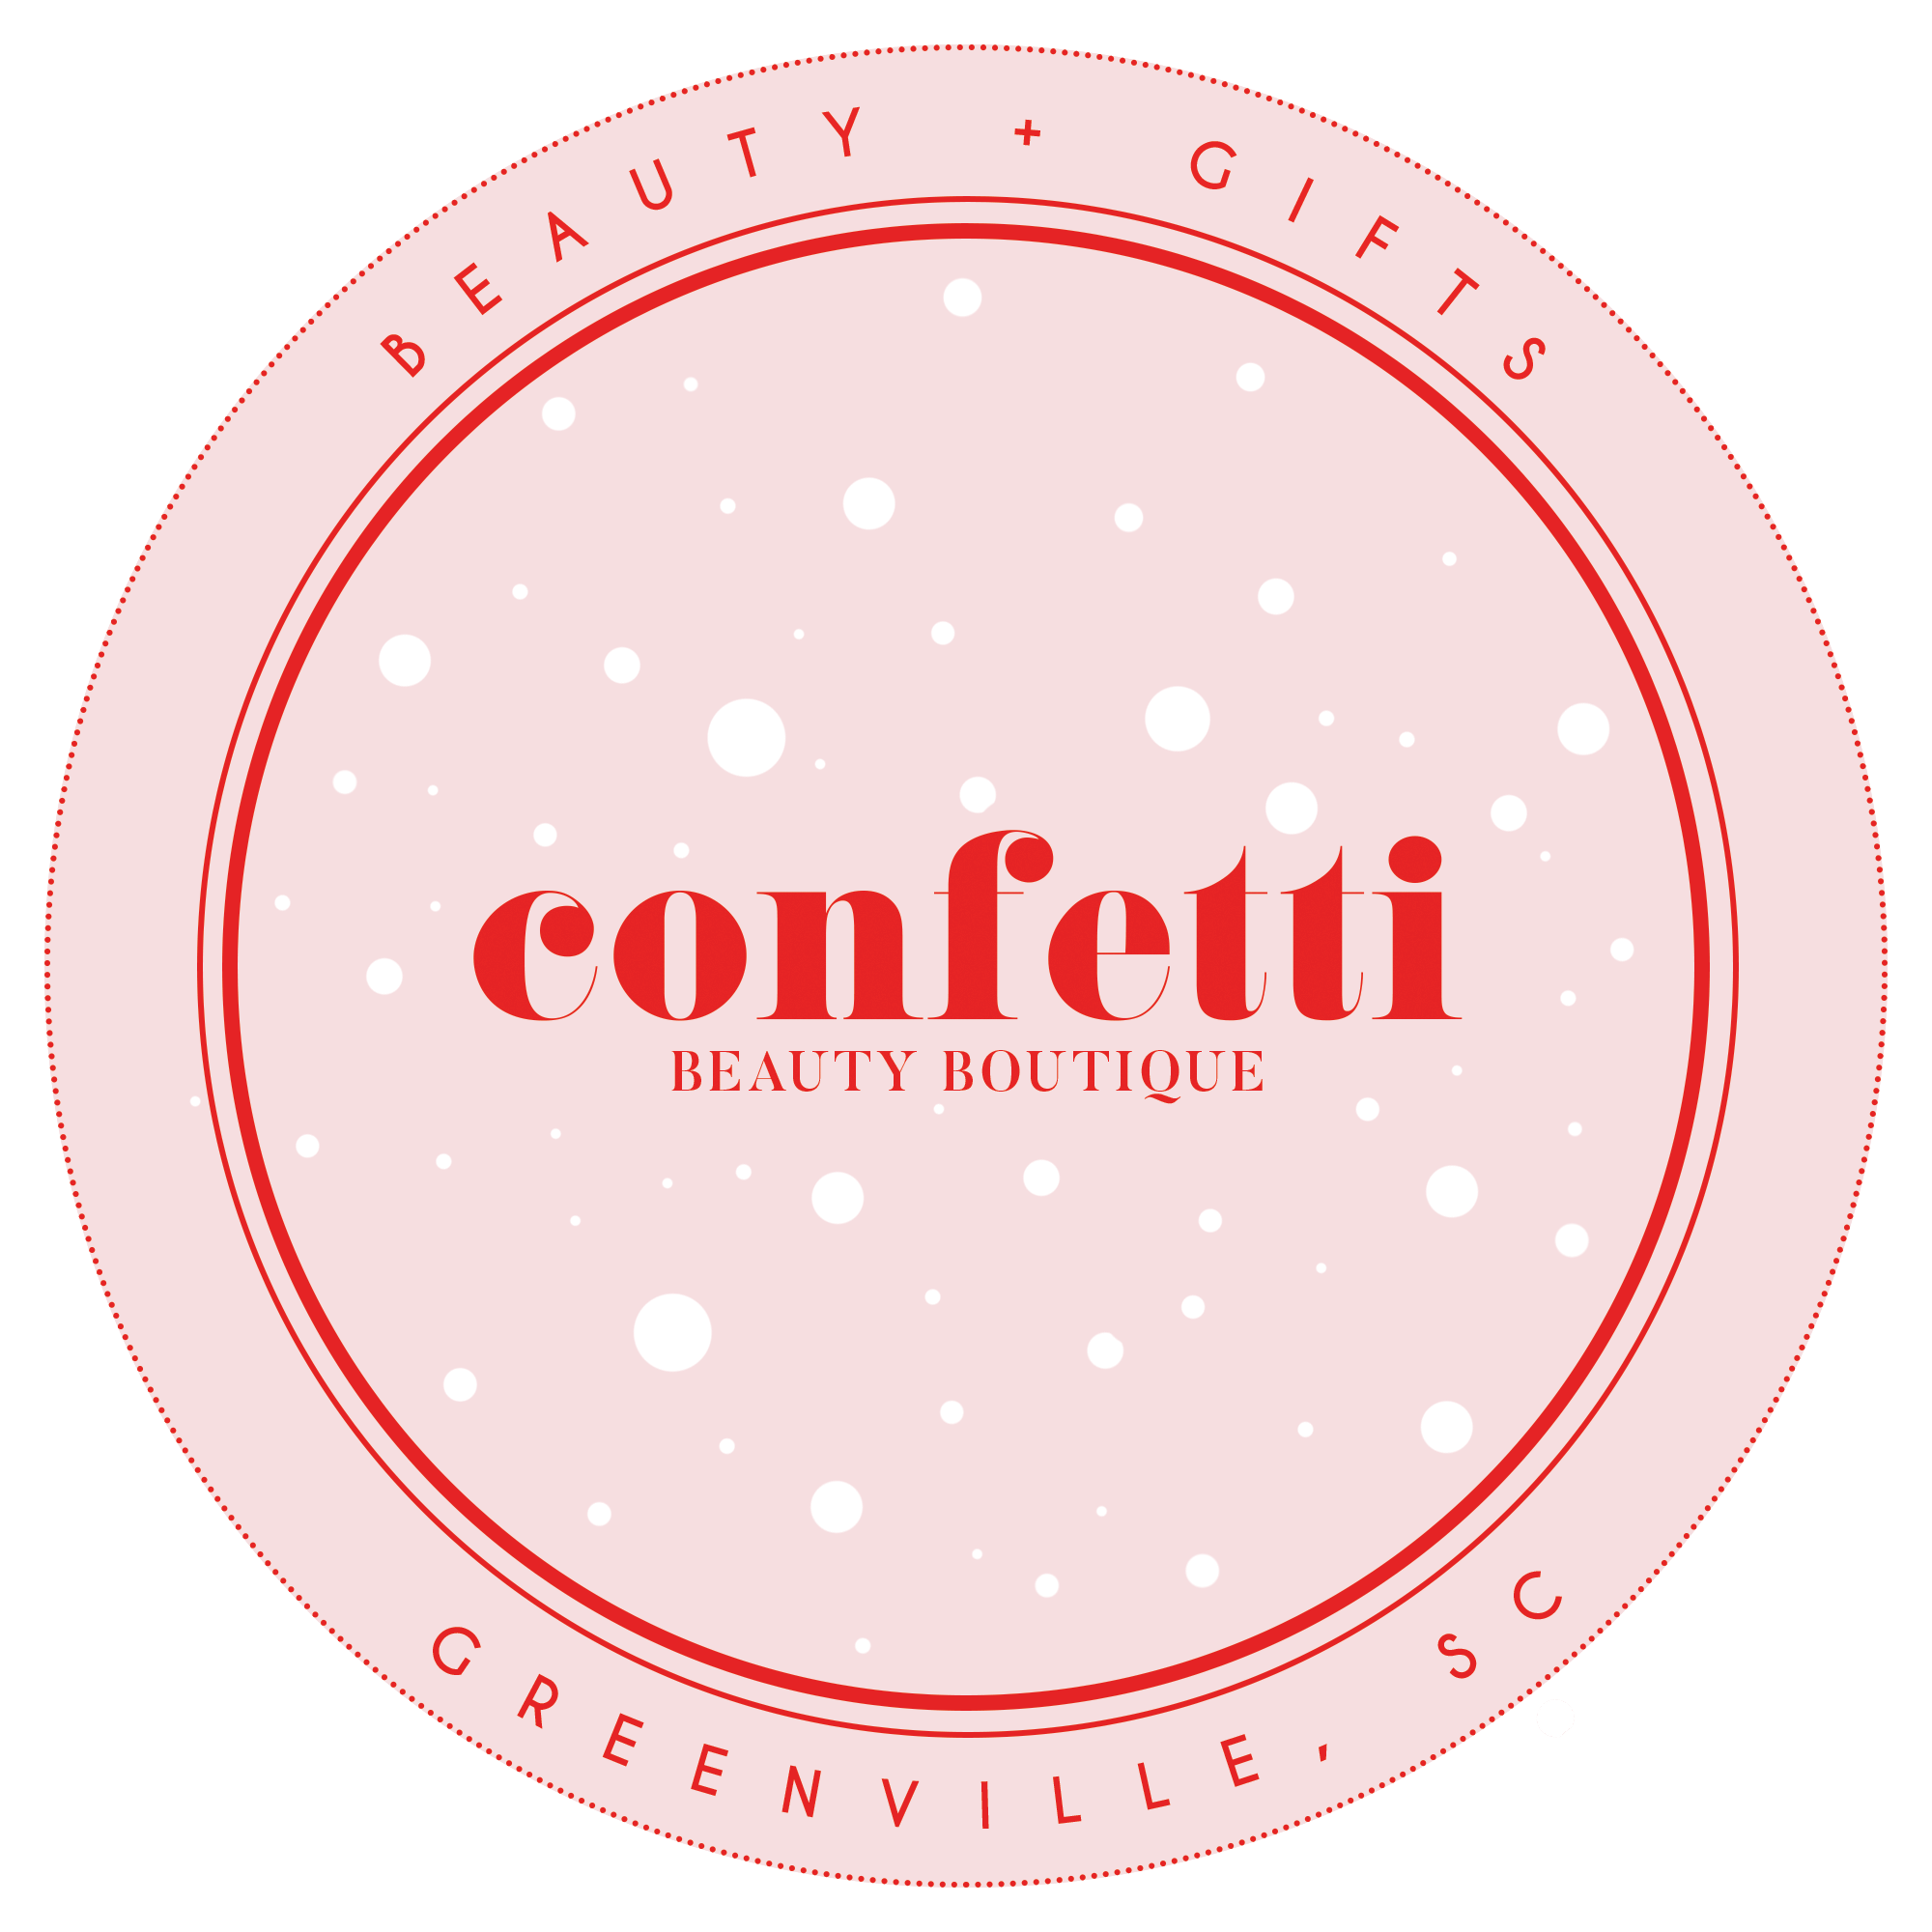 Confetti Beauty Boutique